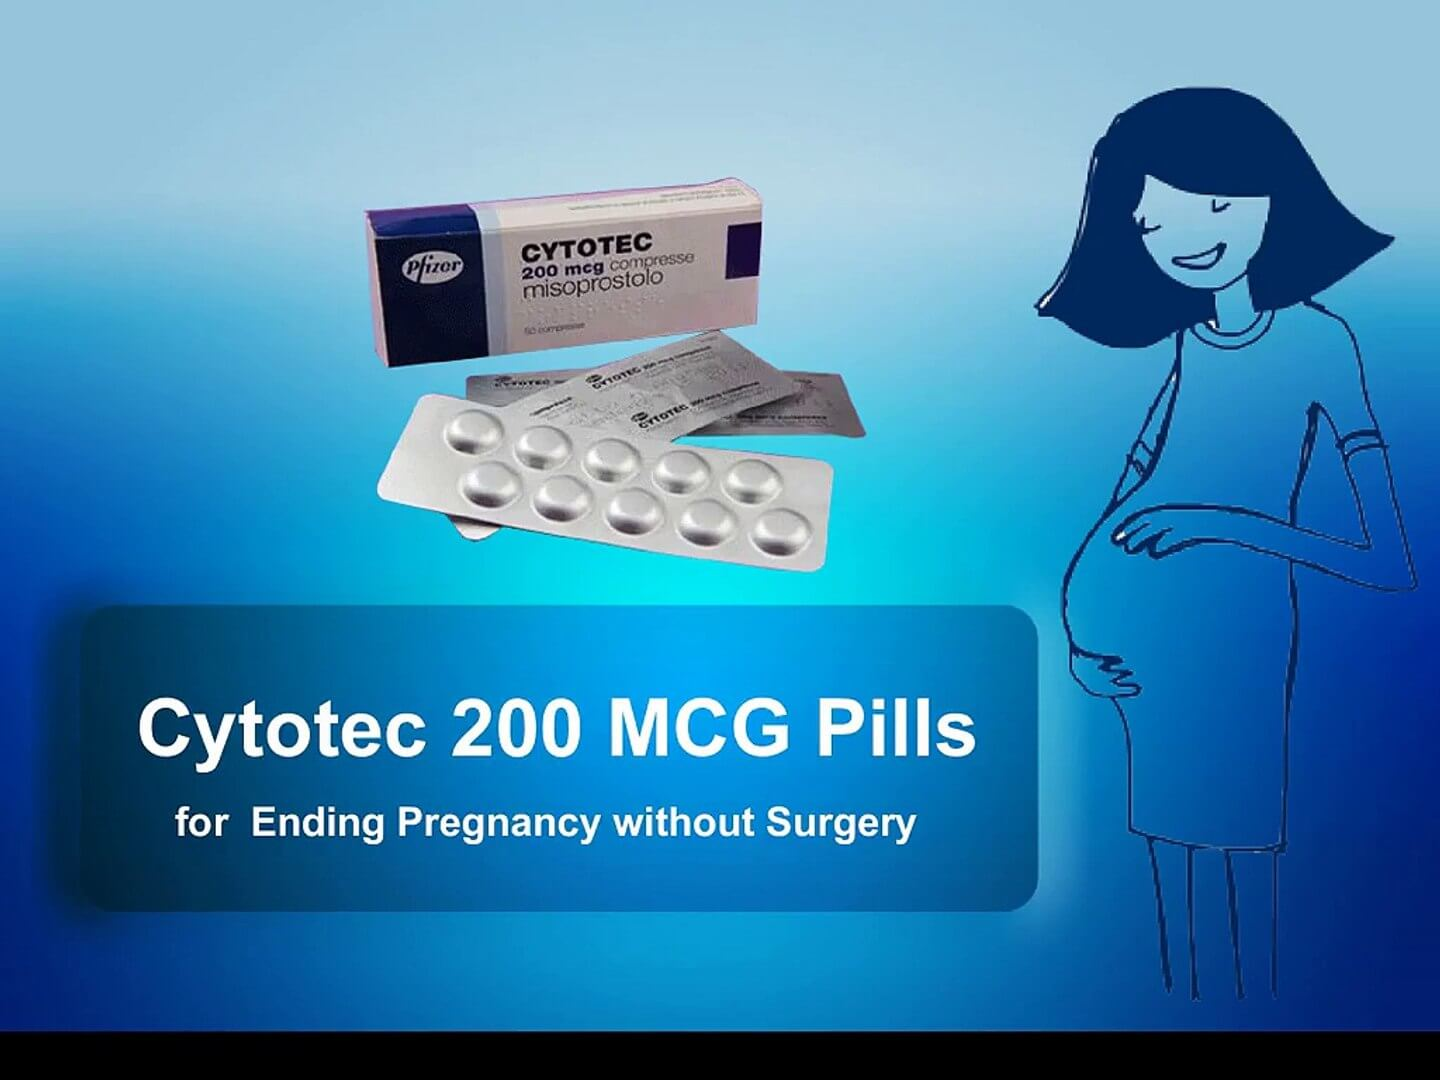 Know more about Cytotec pills used to terminate pregnancy